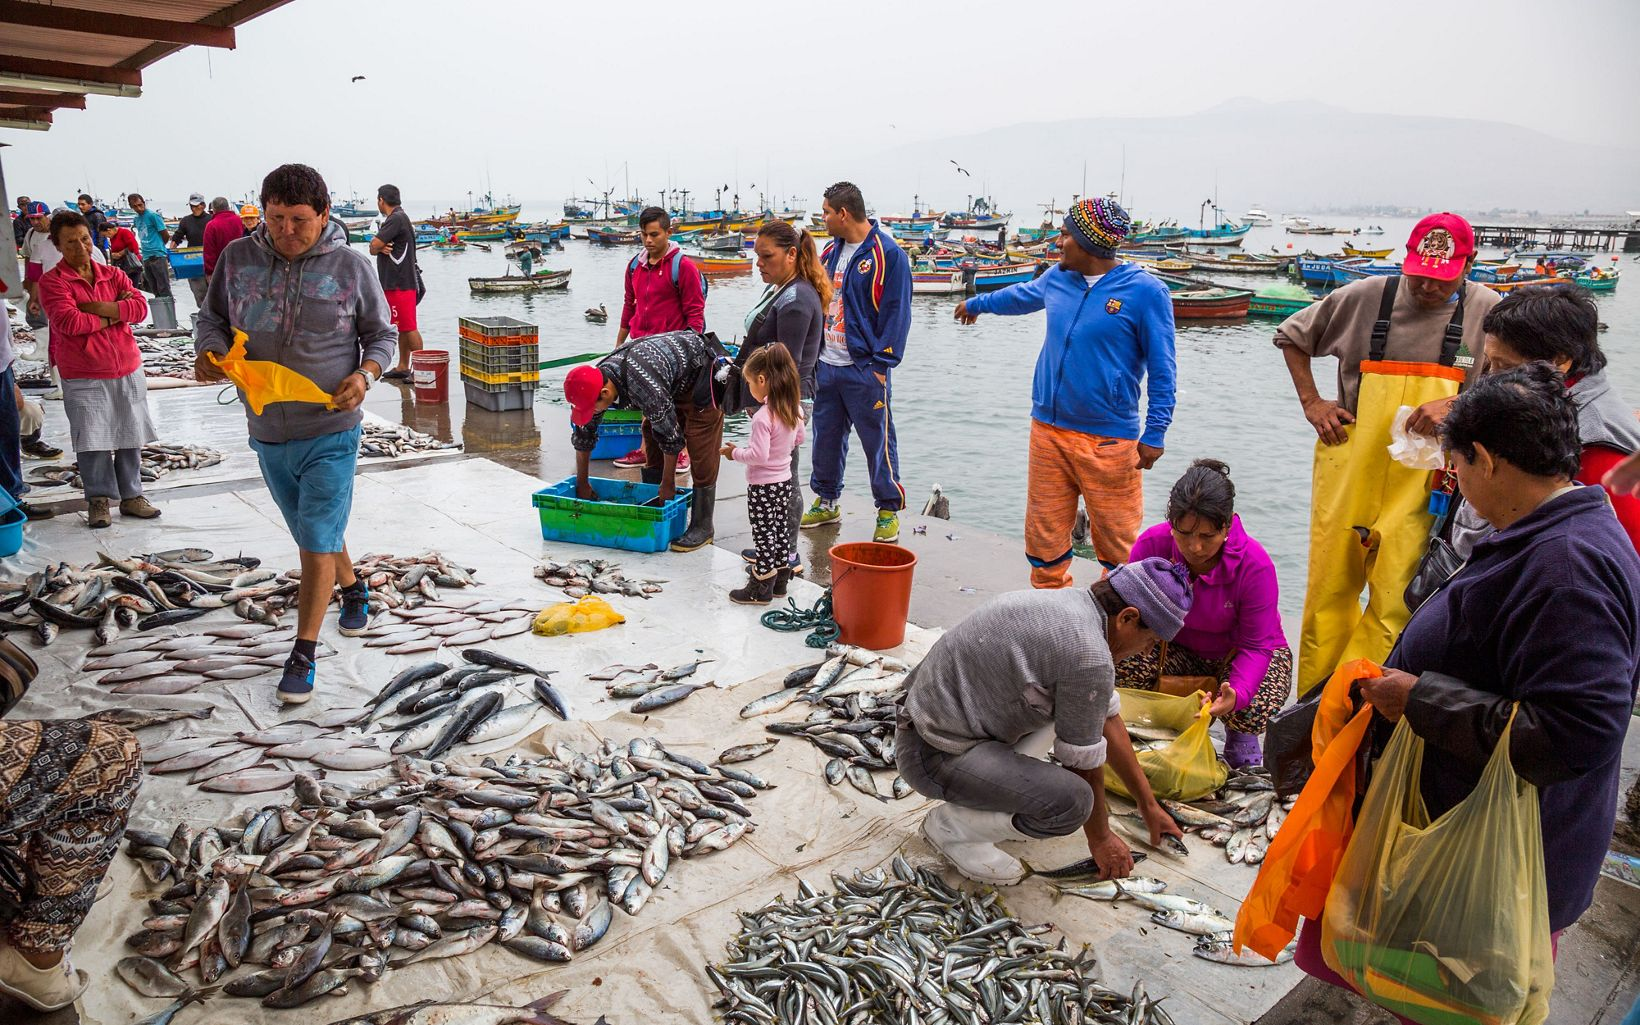 in Ancón, Peru. Ancón has thousands of years of history harvesting food from the sea and is working together as a community to make their practices as responsible as possible.